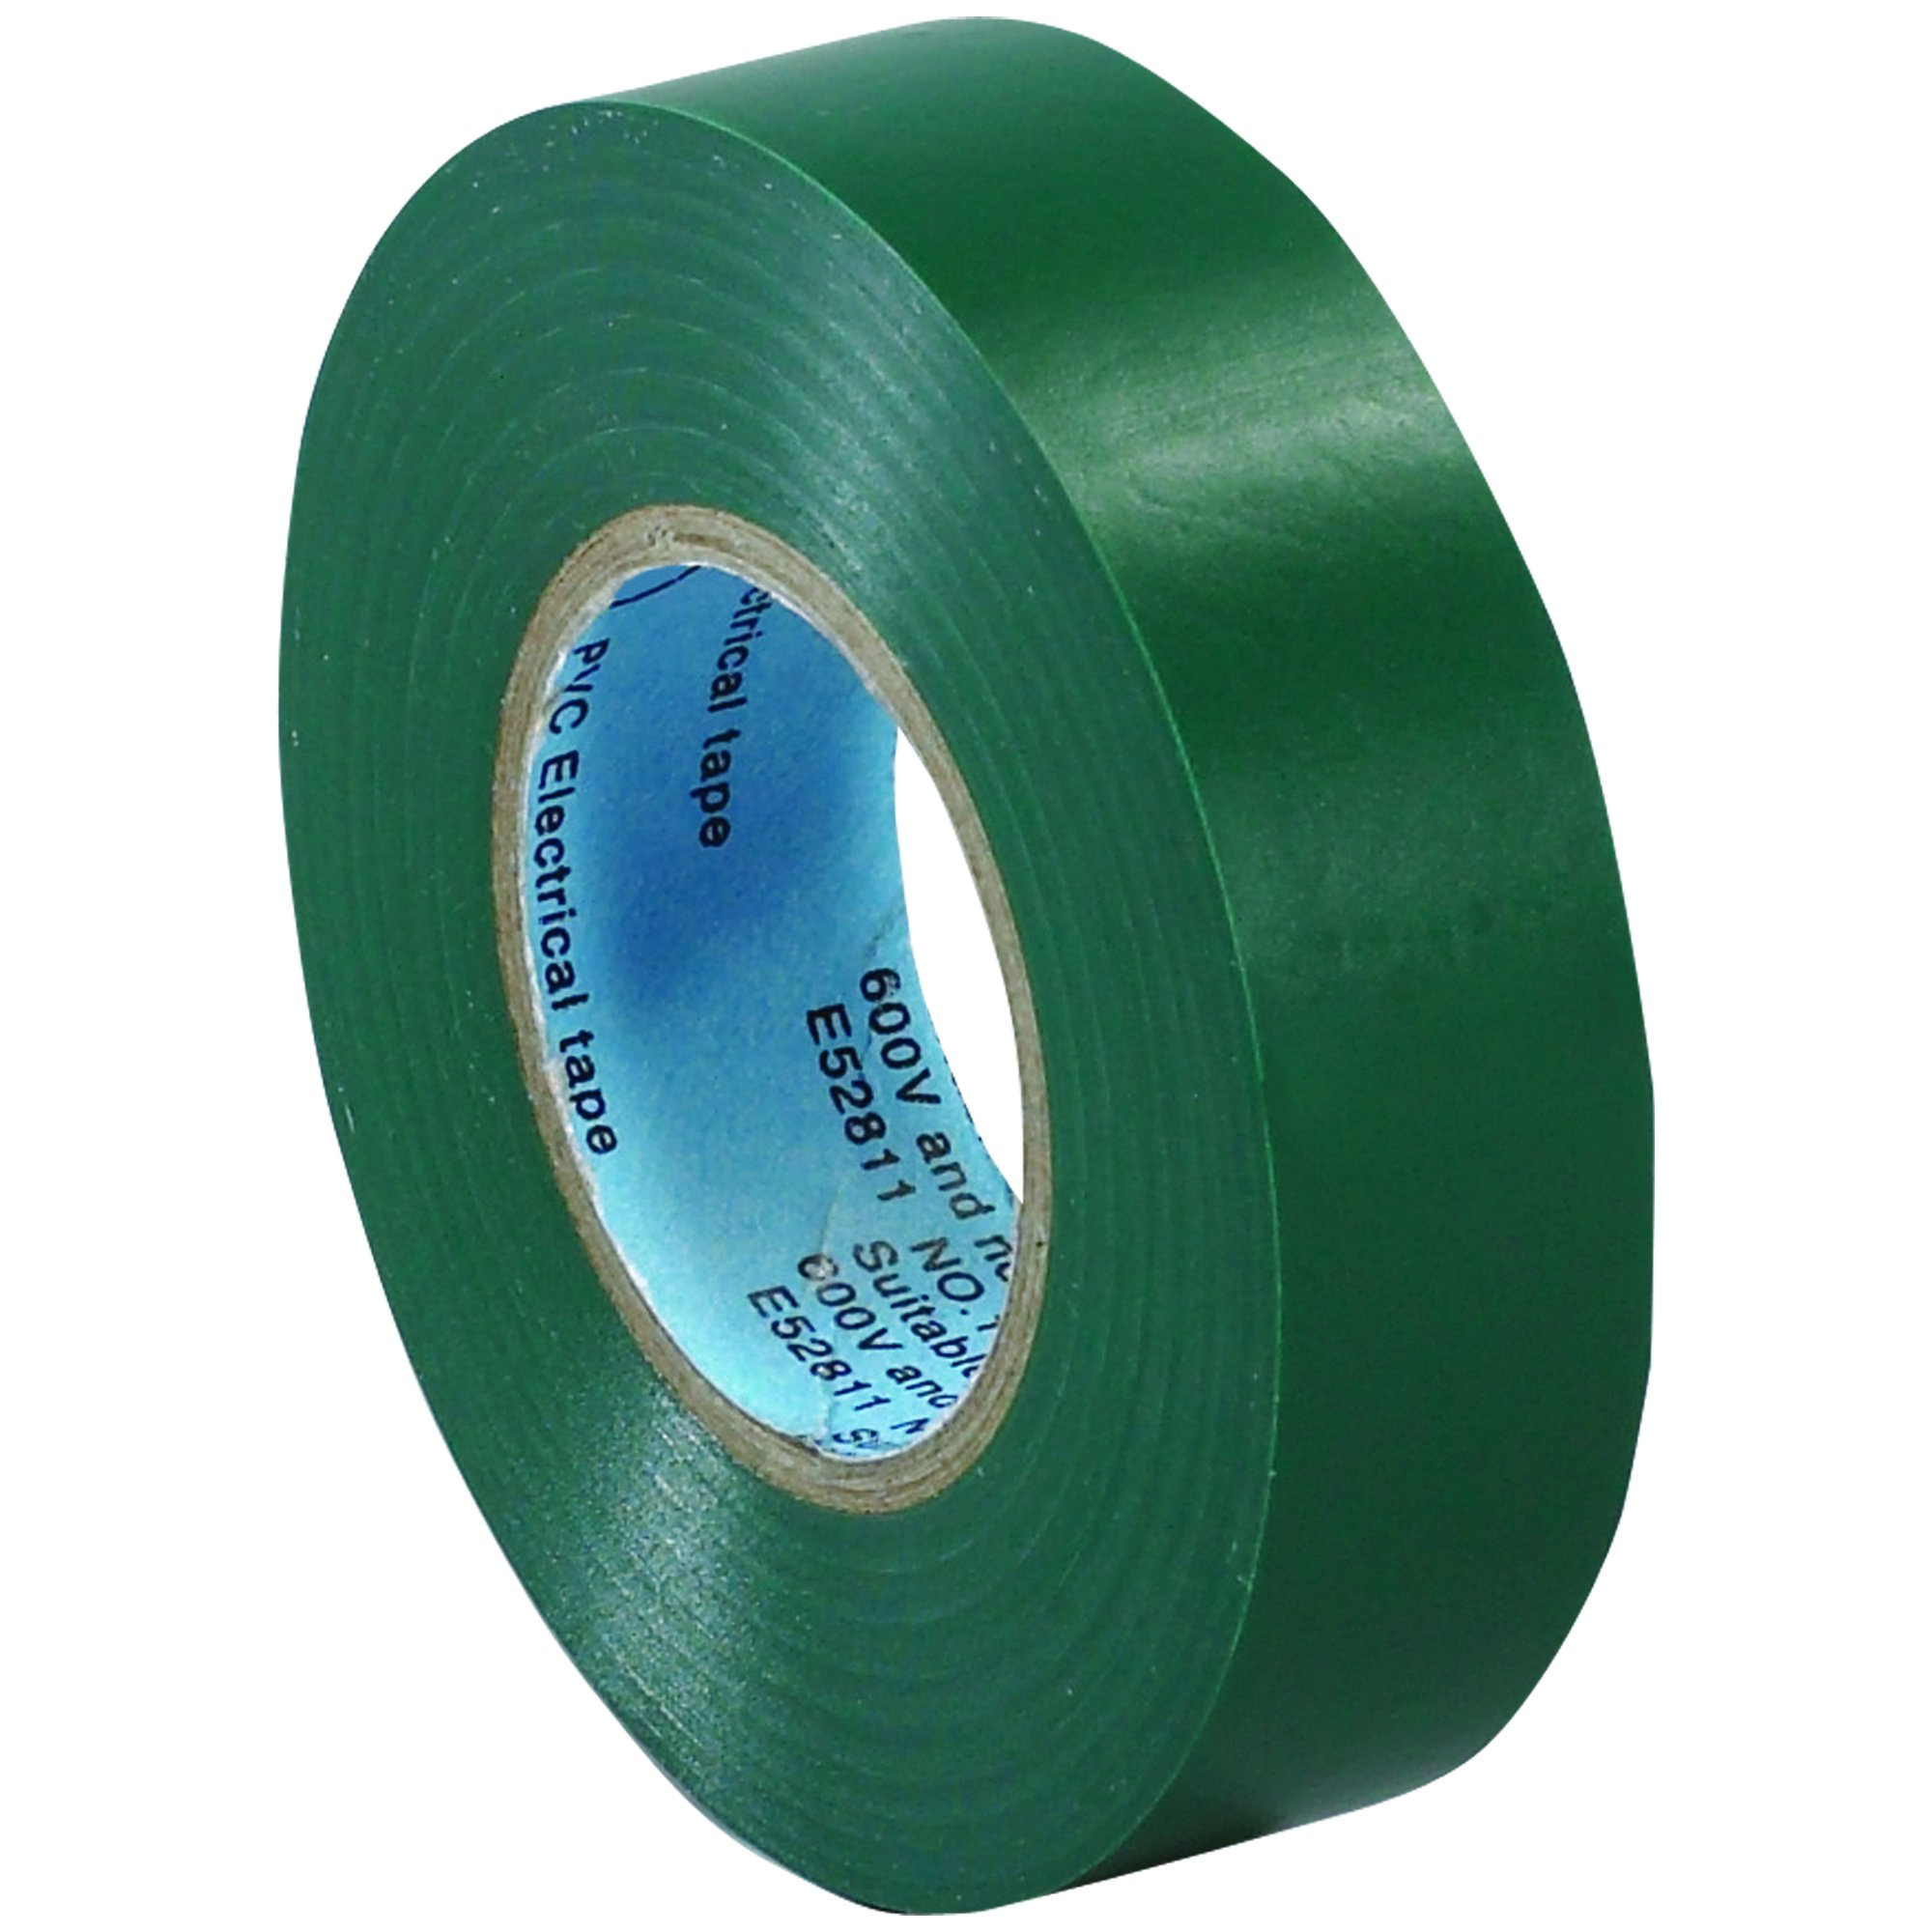 BOX BT96461810PKG Green Electrical Tape, 20 yd. Length, 3/4'' (Pack of 10) by Box